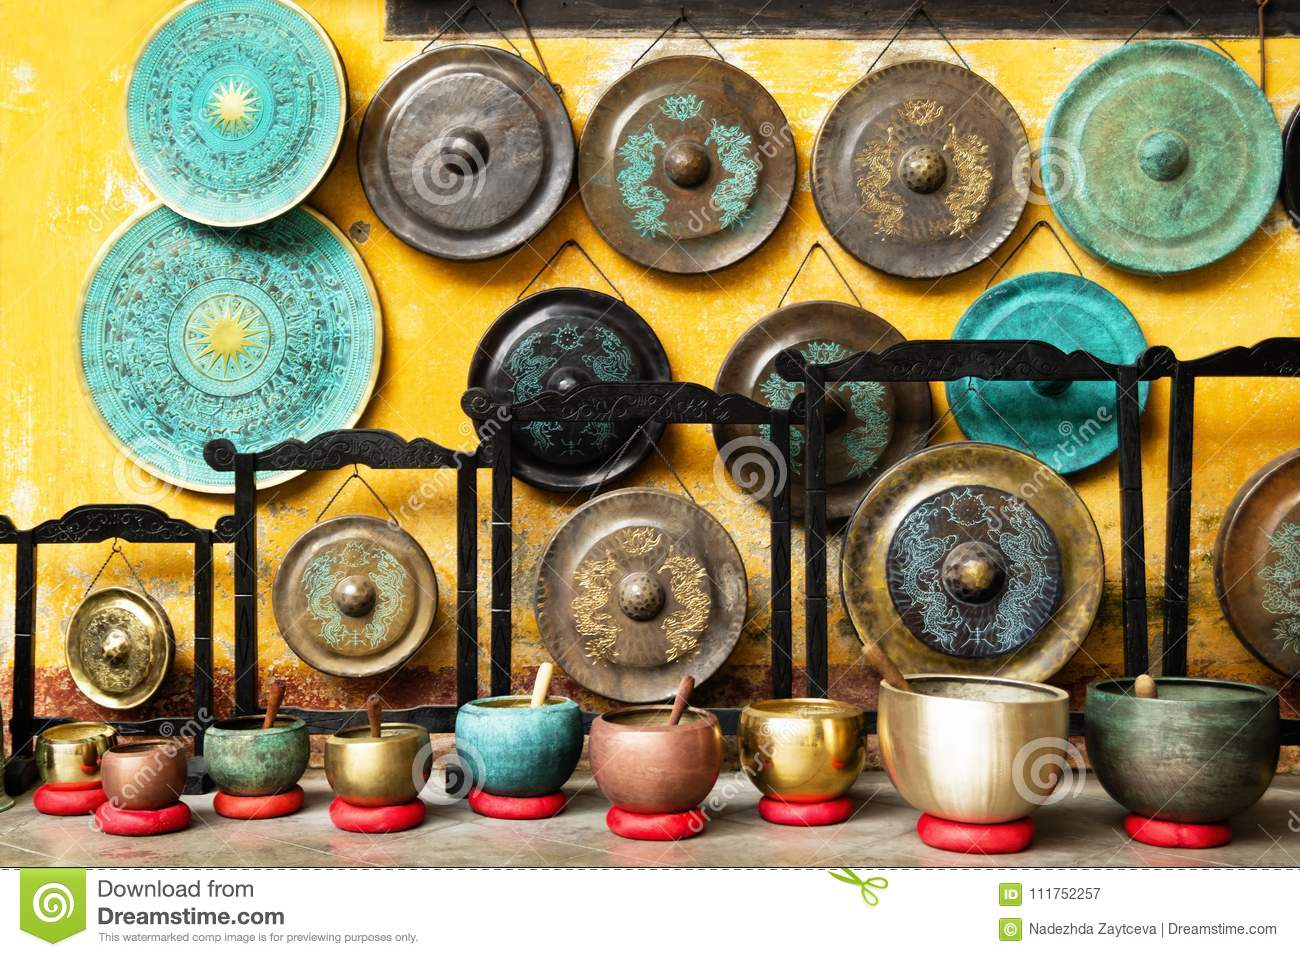 Gongs and singing bowls - traditional Asian musical instruments on a street market.